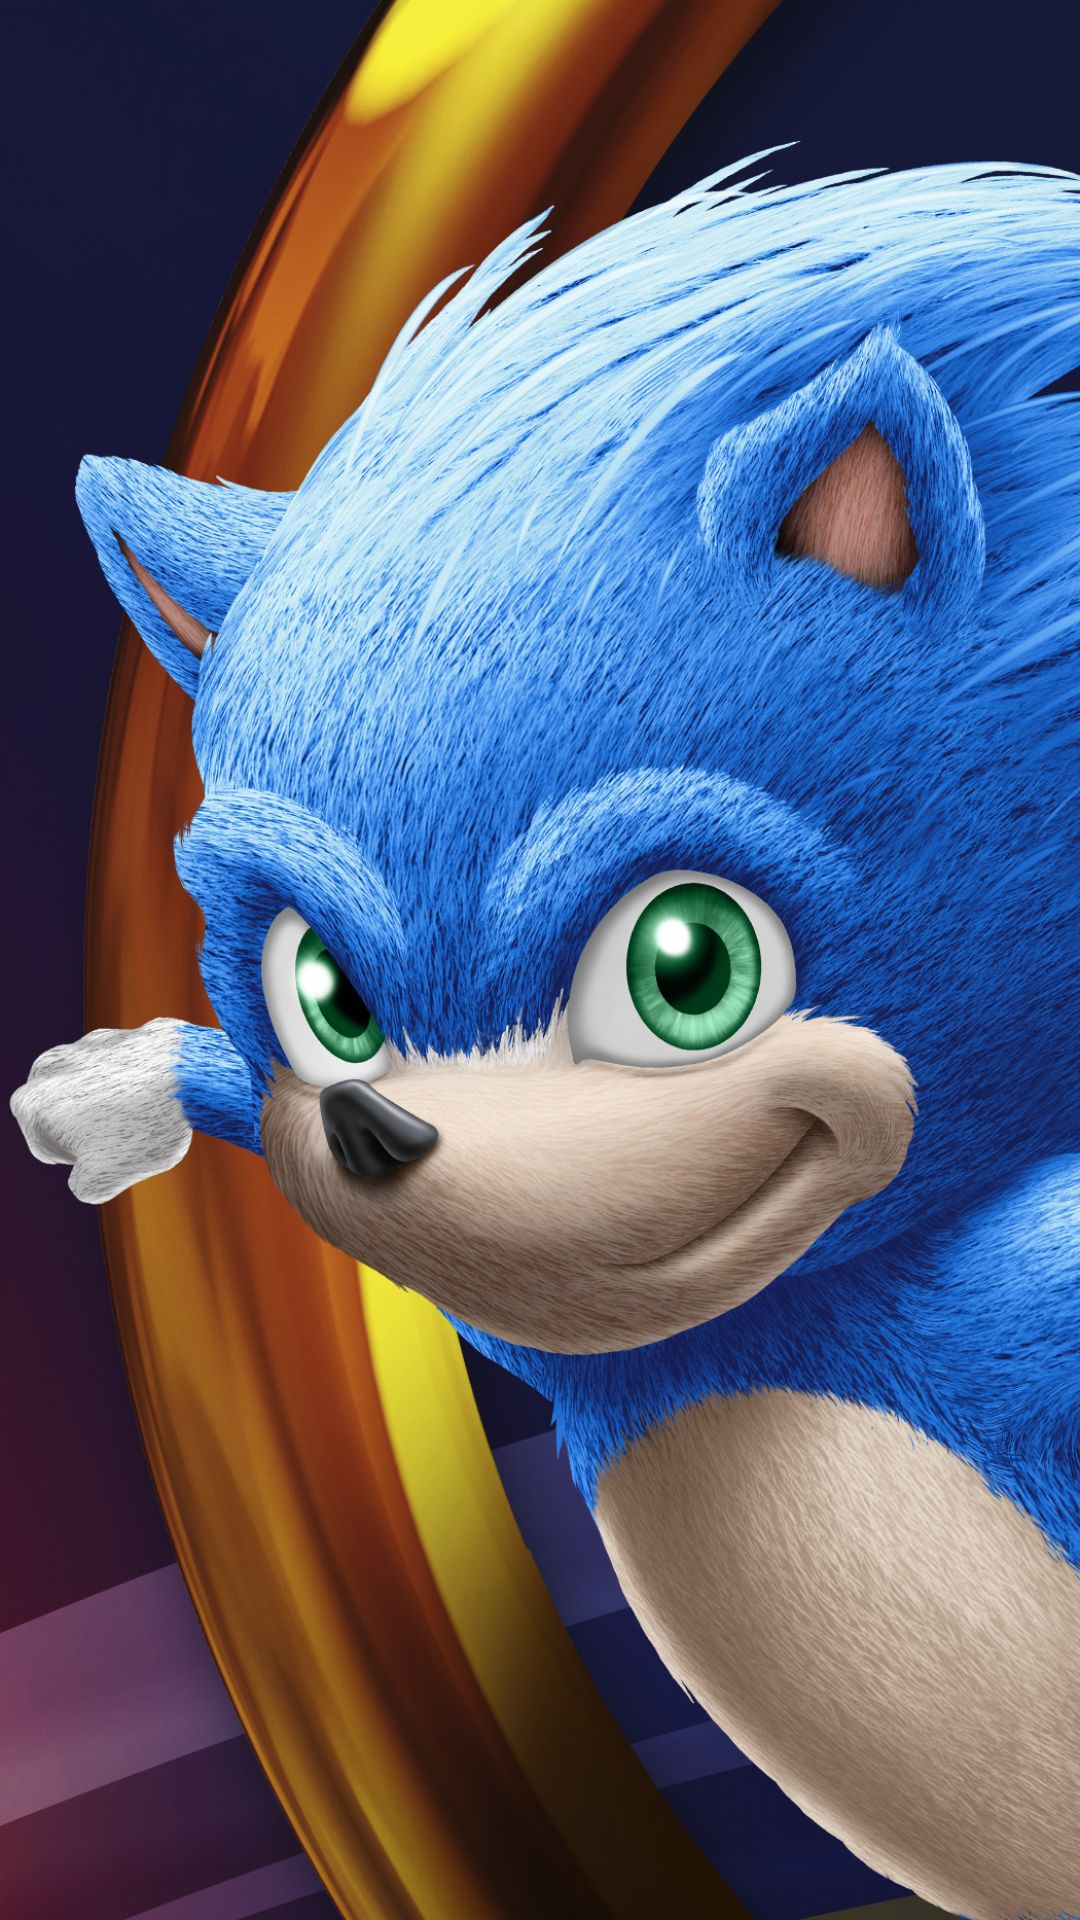 Epic Sonic Wallpaper Iphone On High Quality Wallpaper on